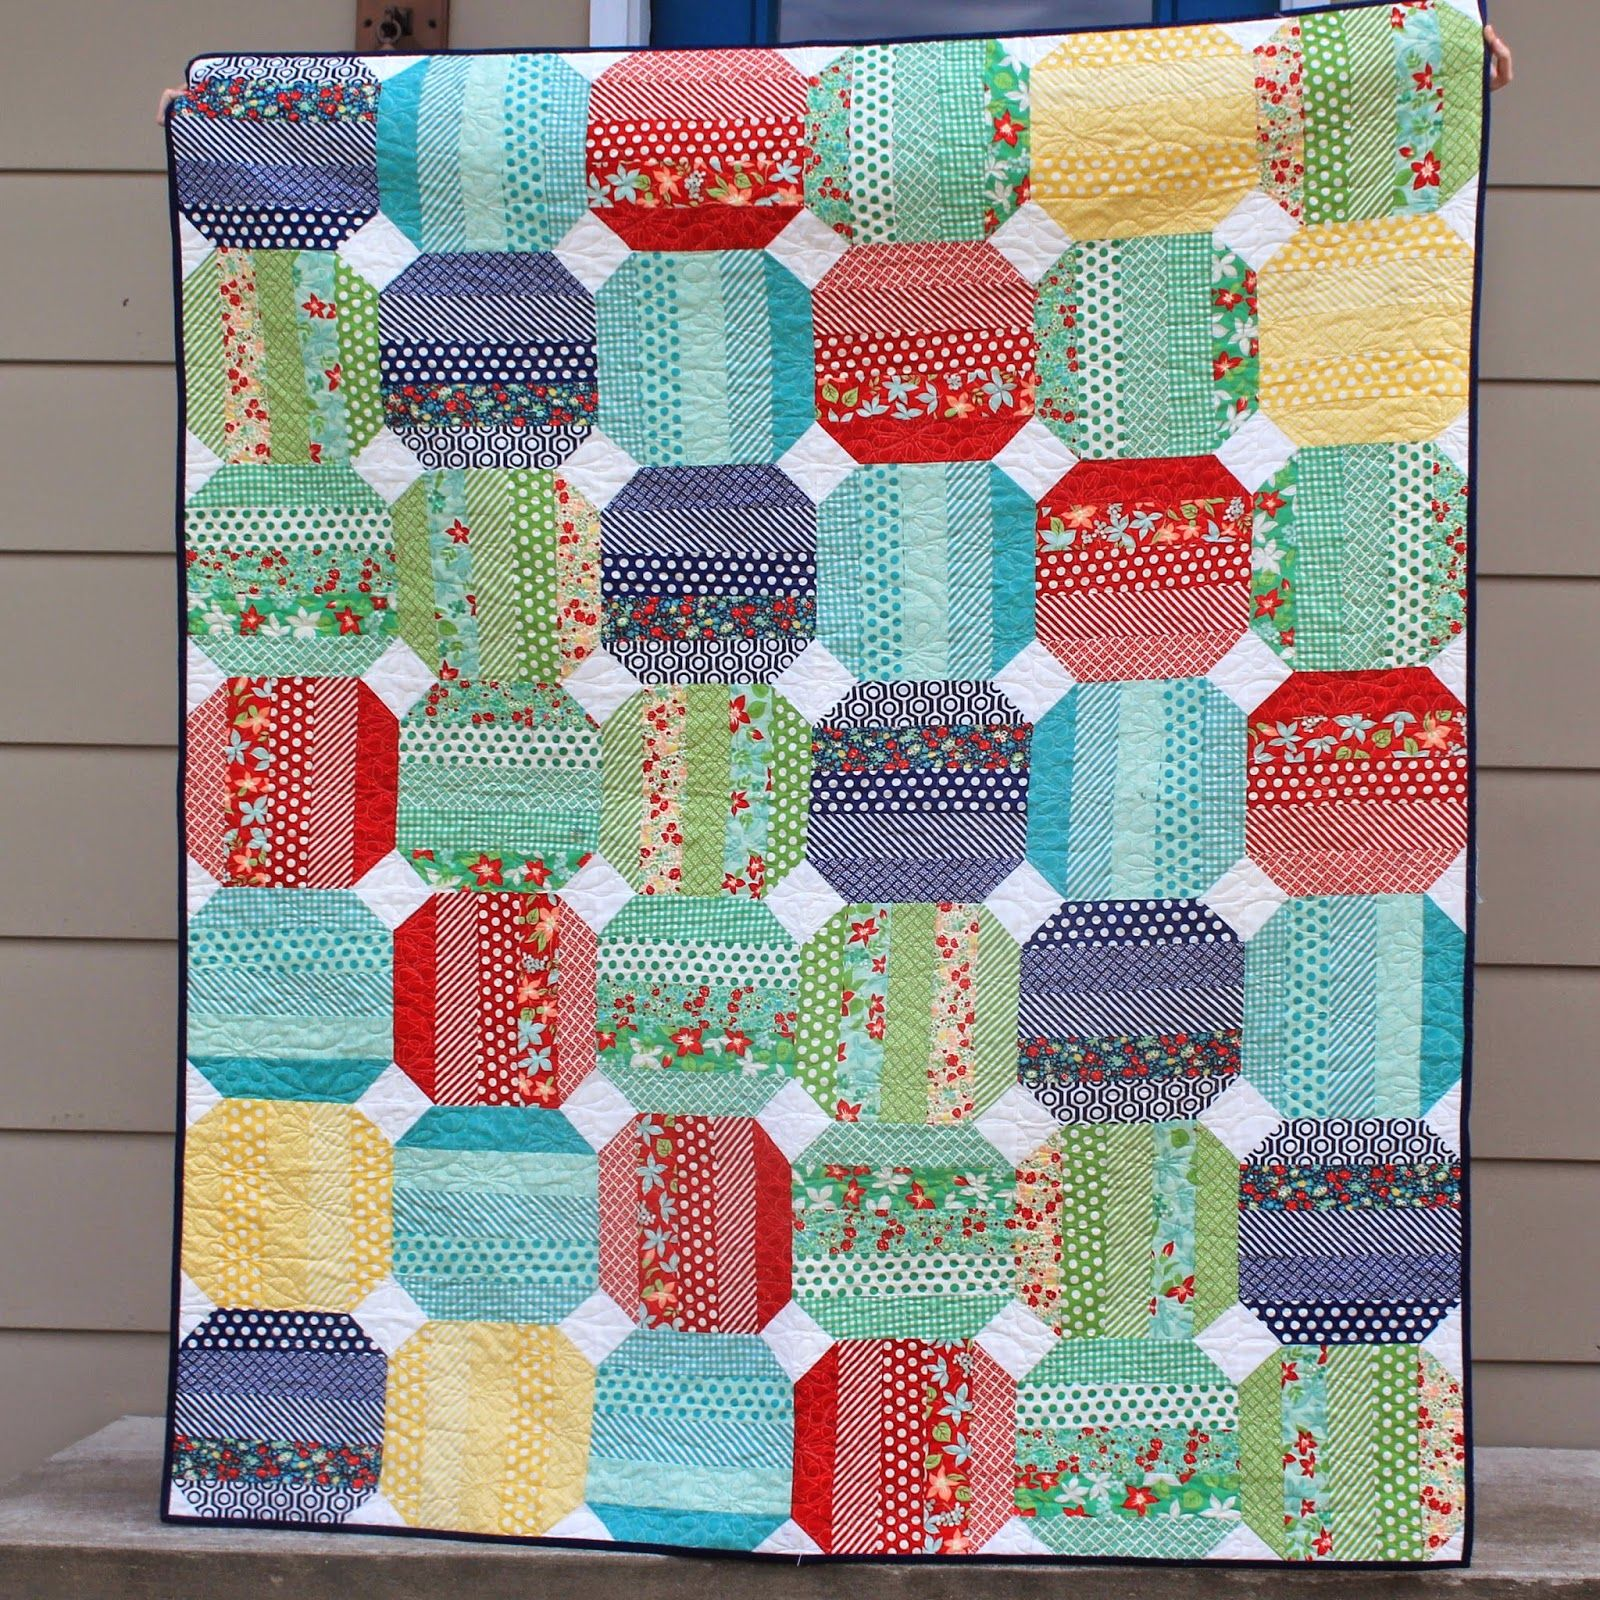 Jelly roll quilt using modas april showers quilts more quilts jelly roll quilt using modas april showers baditri Images